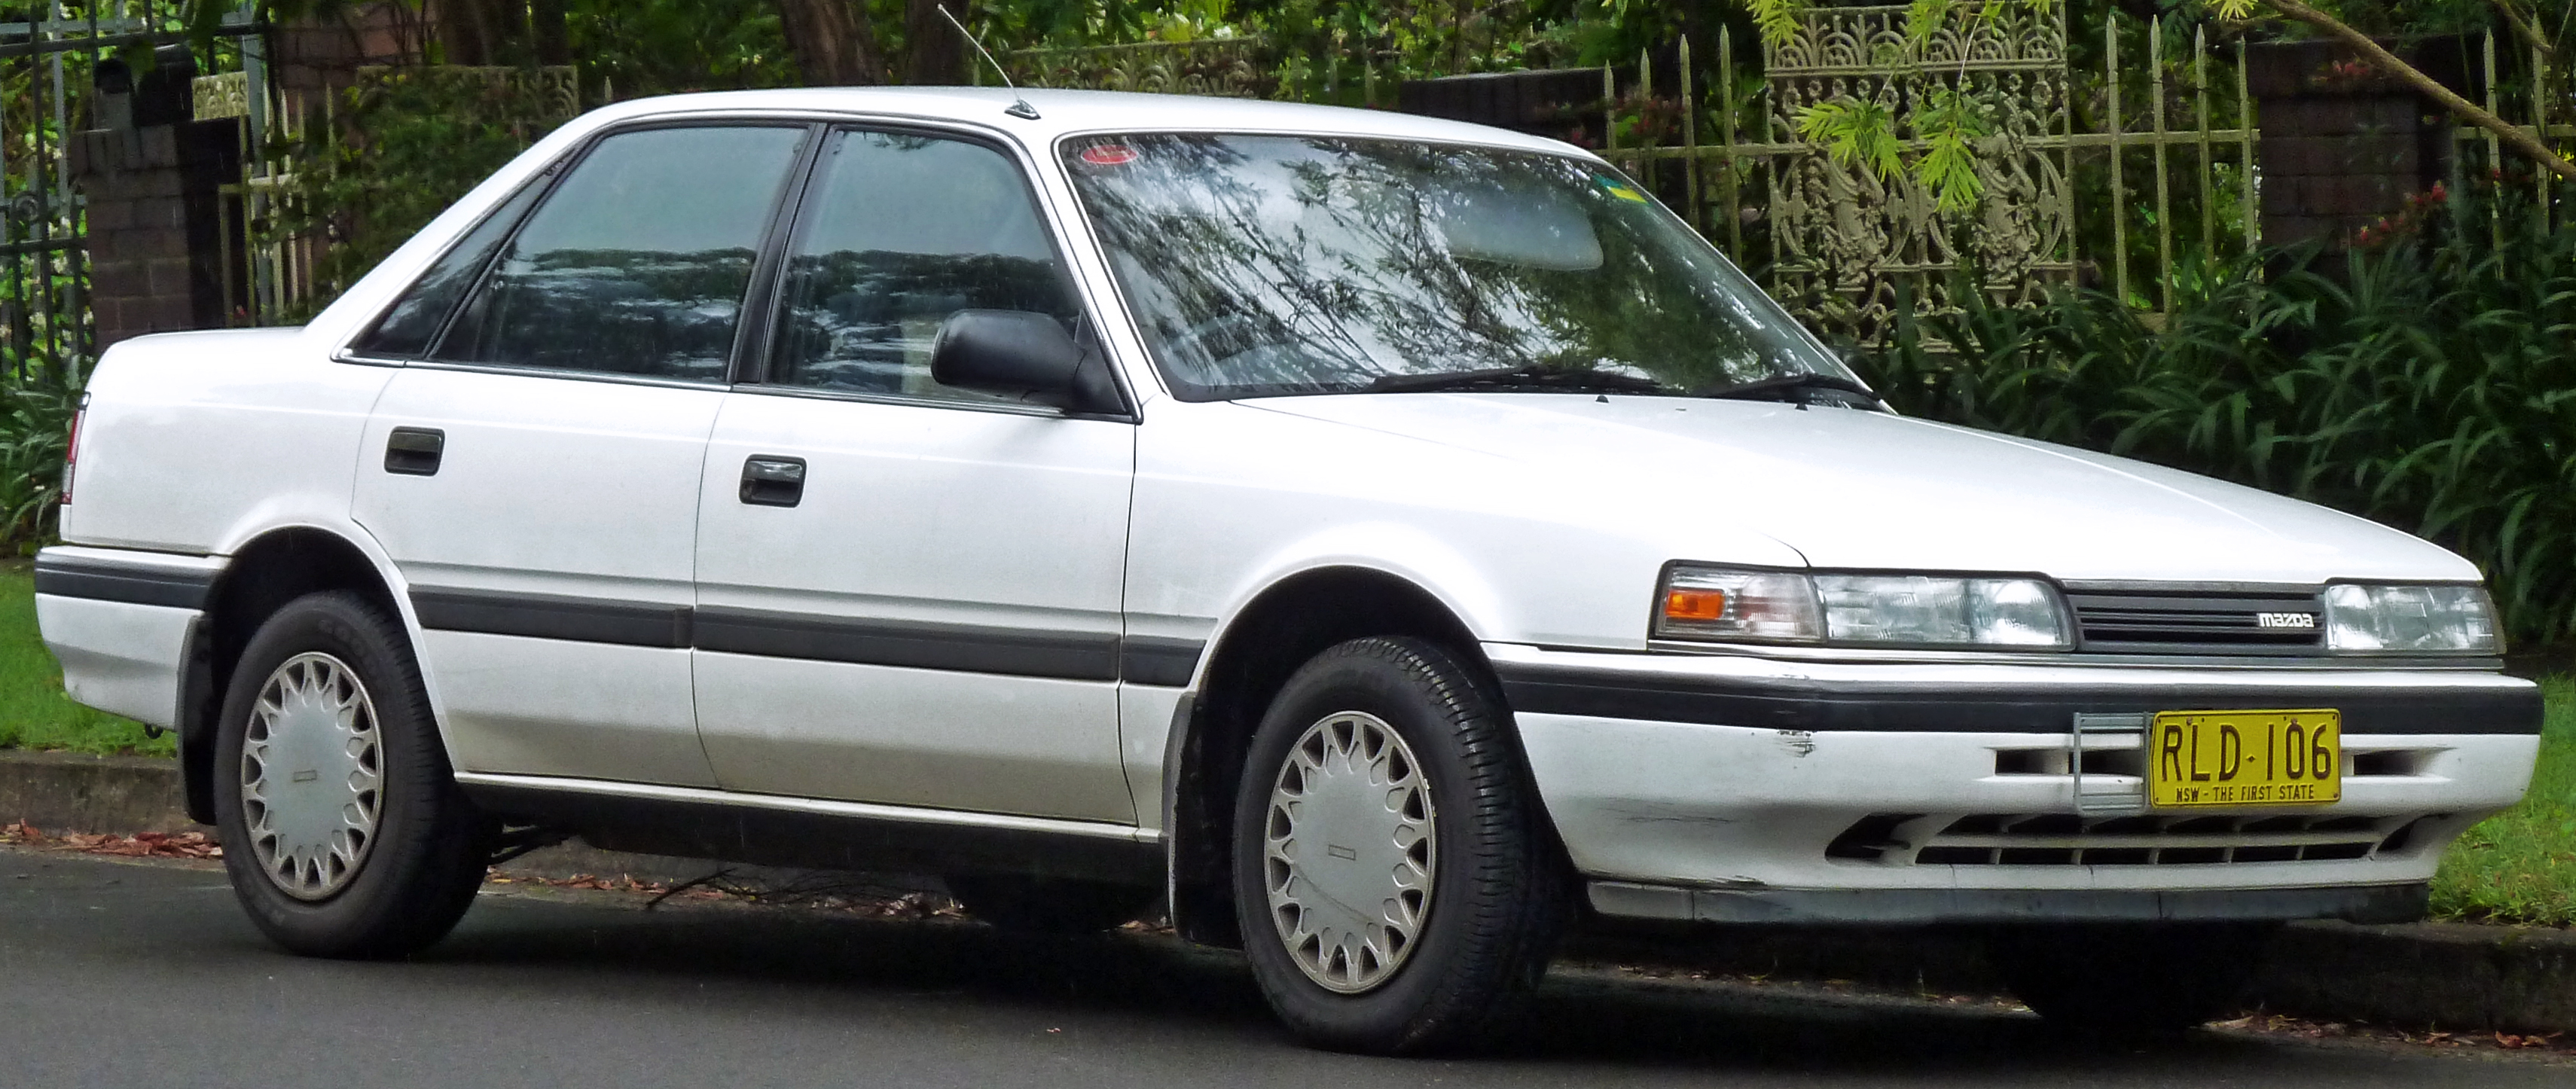 Mazda Gd Series I Sedan on Mazda F2t